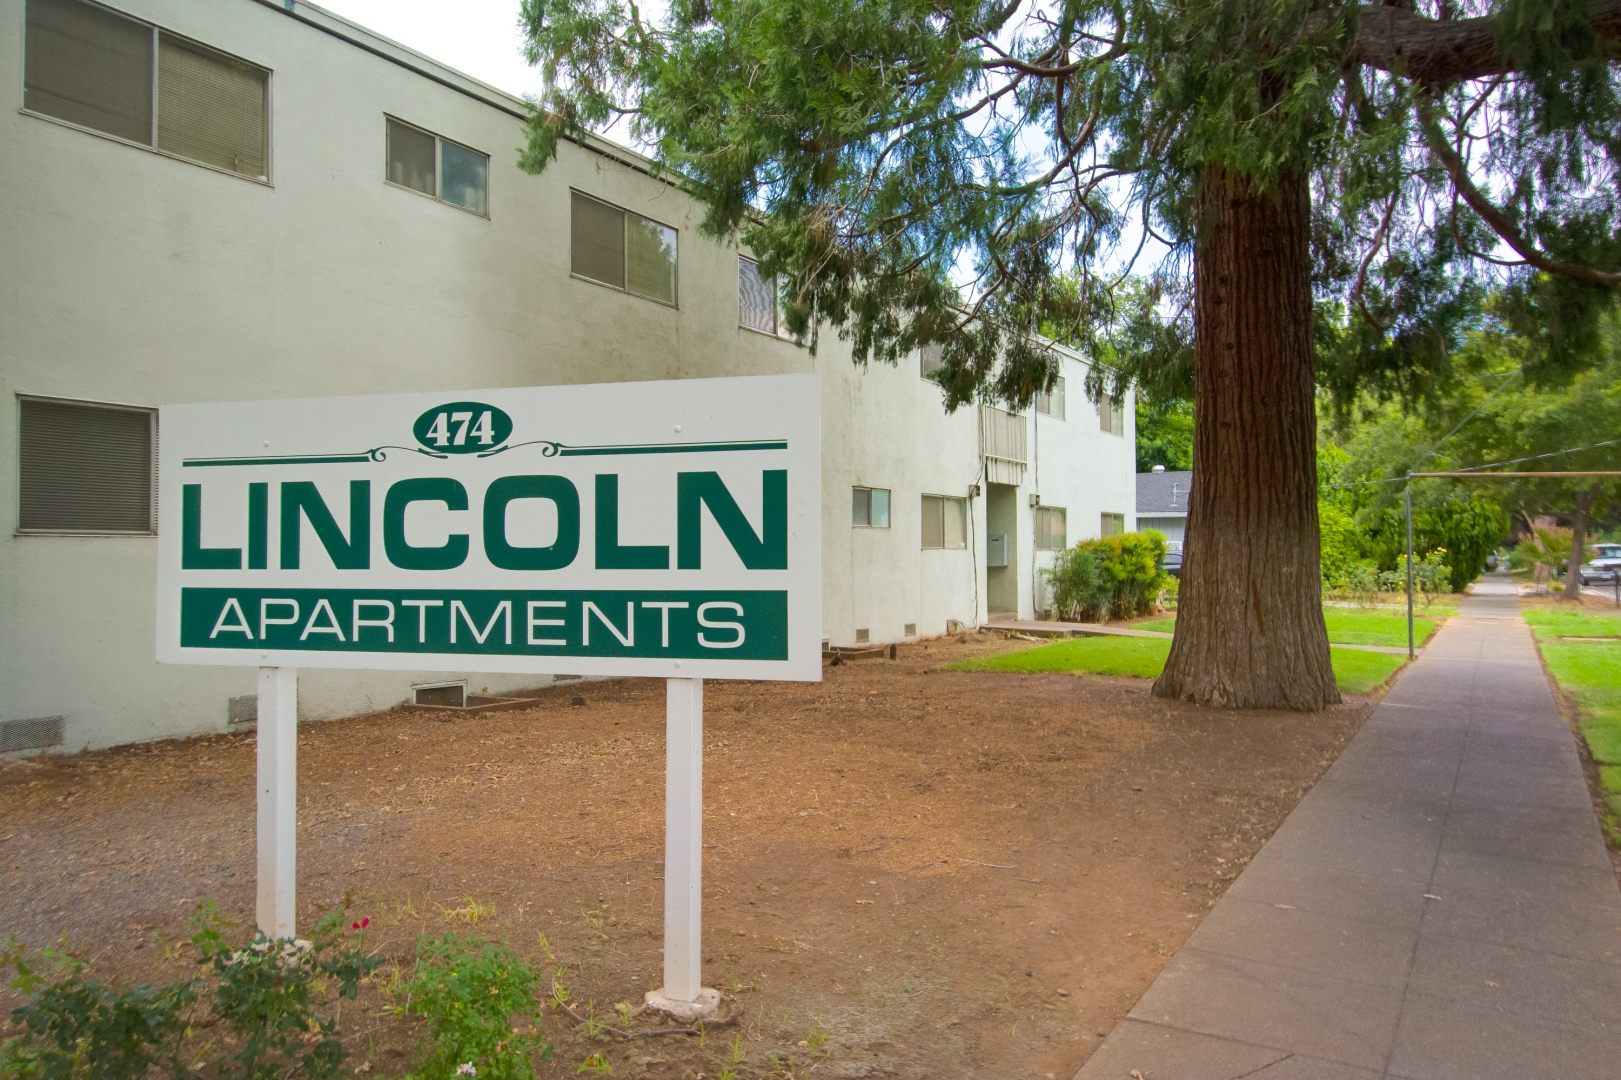 lincoln uh picture apartments in p rent for trulia strolling ps hills ln ca